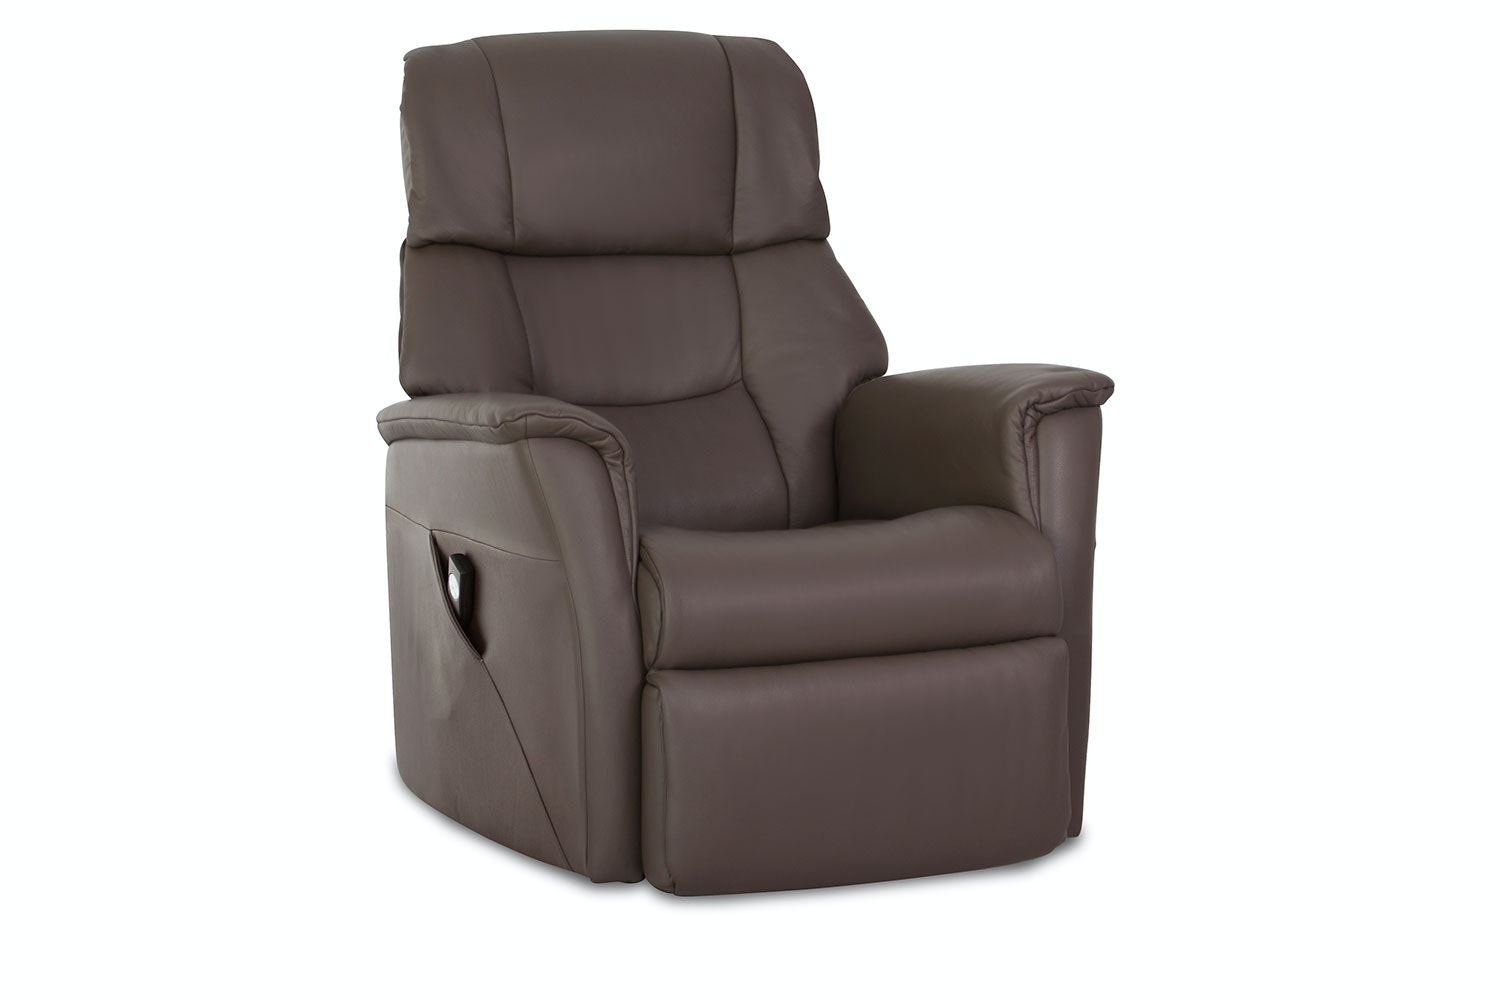 Ventura Leather Multi Function Recliner Chair - Large - Prime - IMG